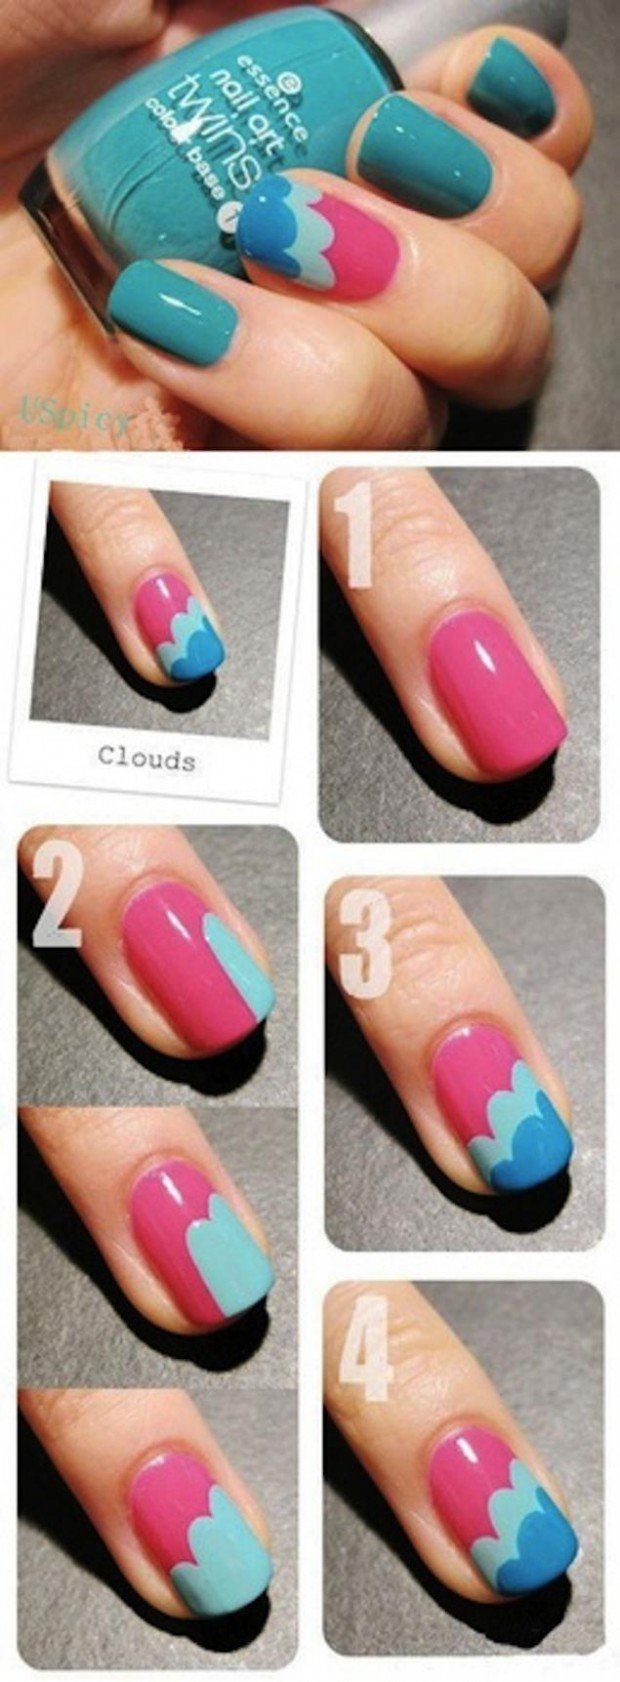 The cloud nail art